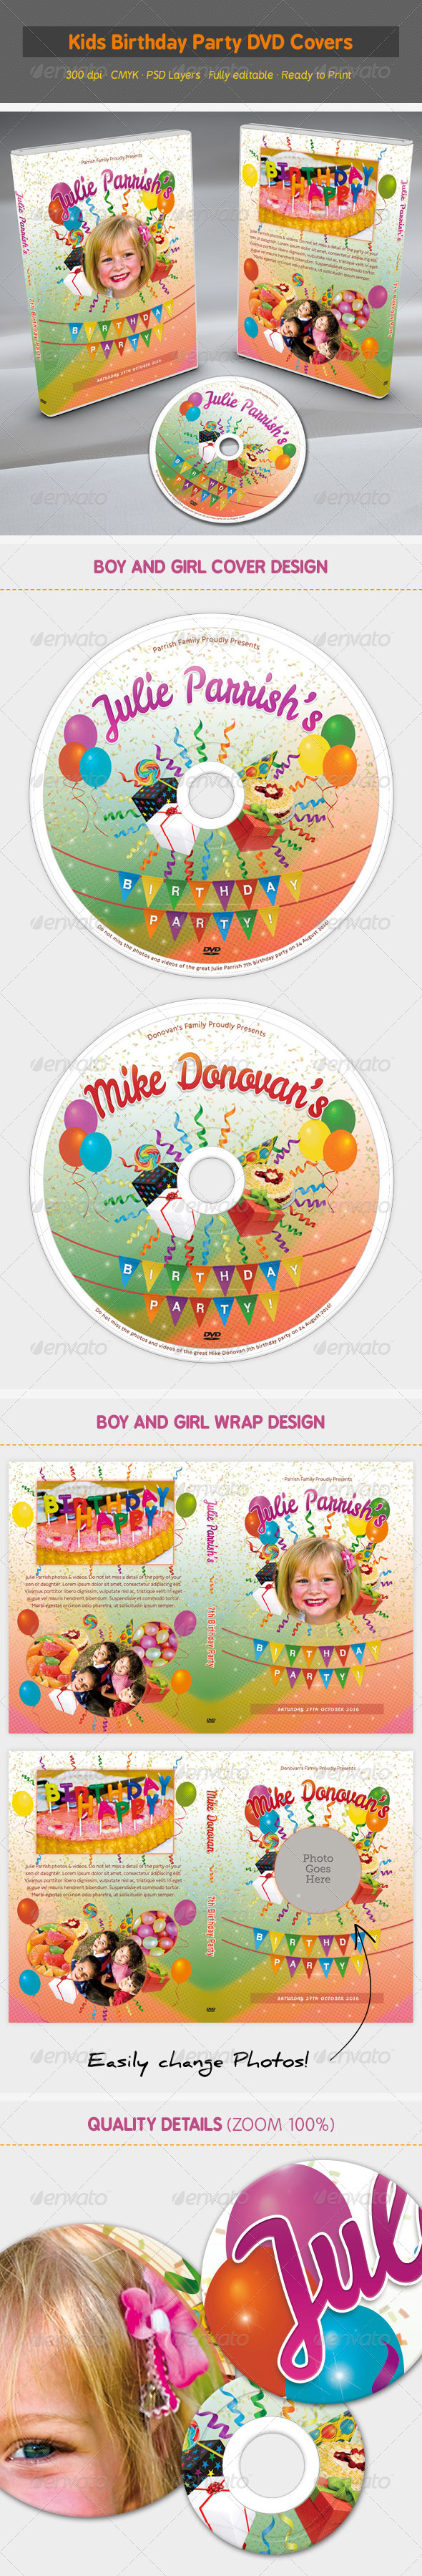 GraphicRiver Kids Birthday Party DVD Covers 6995350